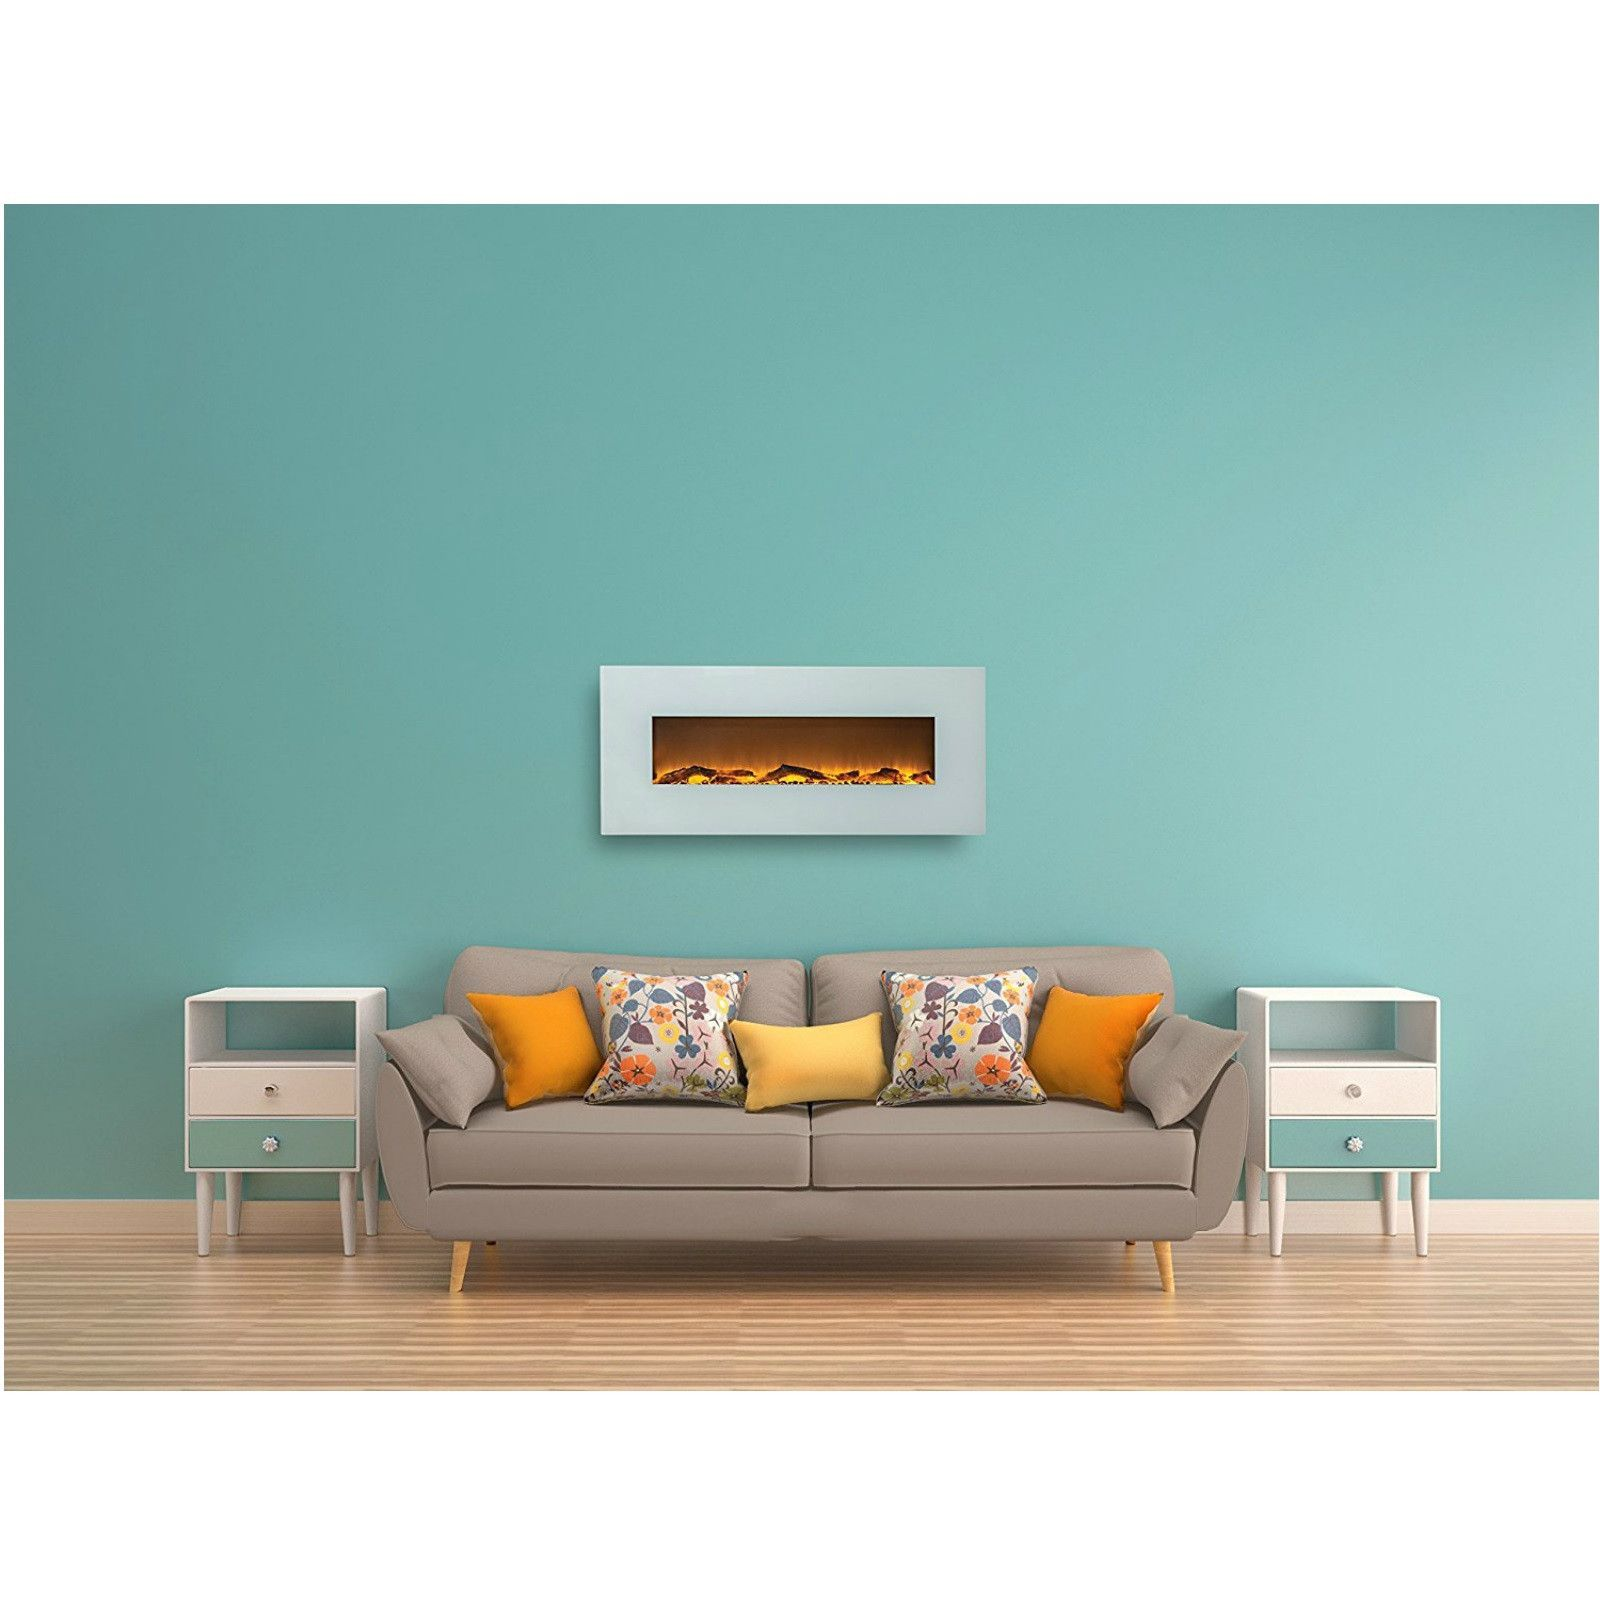 Wall Mounted Electric FireplaceWhite Wall mount